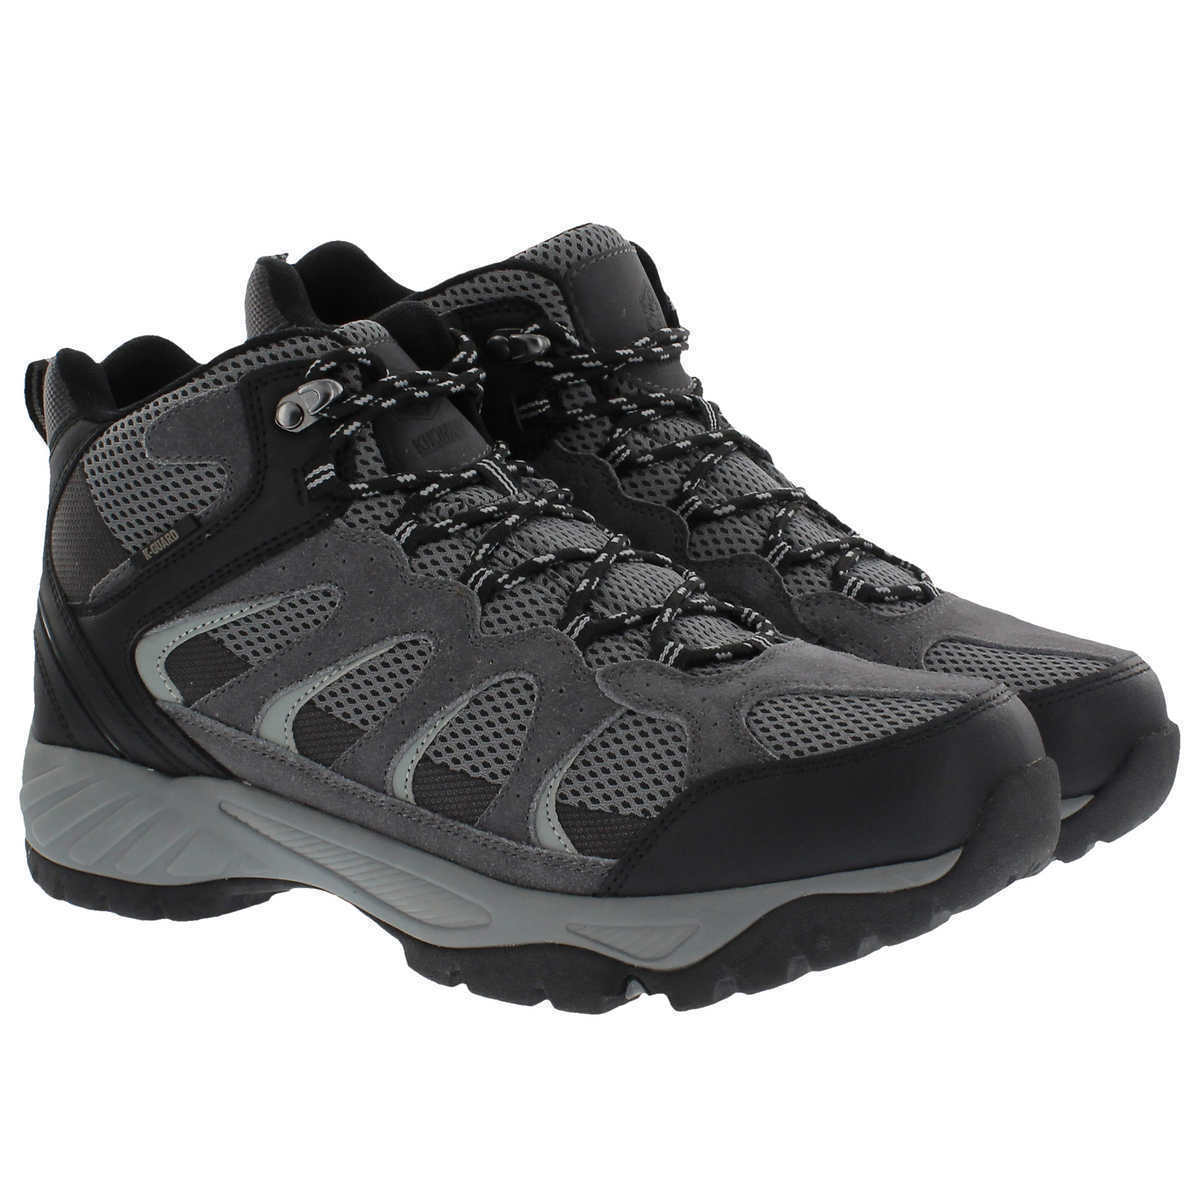 1c89128a89d Khombu Tyler Men's Leather Hiking Outdoor Tactical BOOTS 8